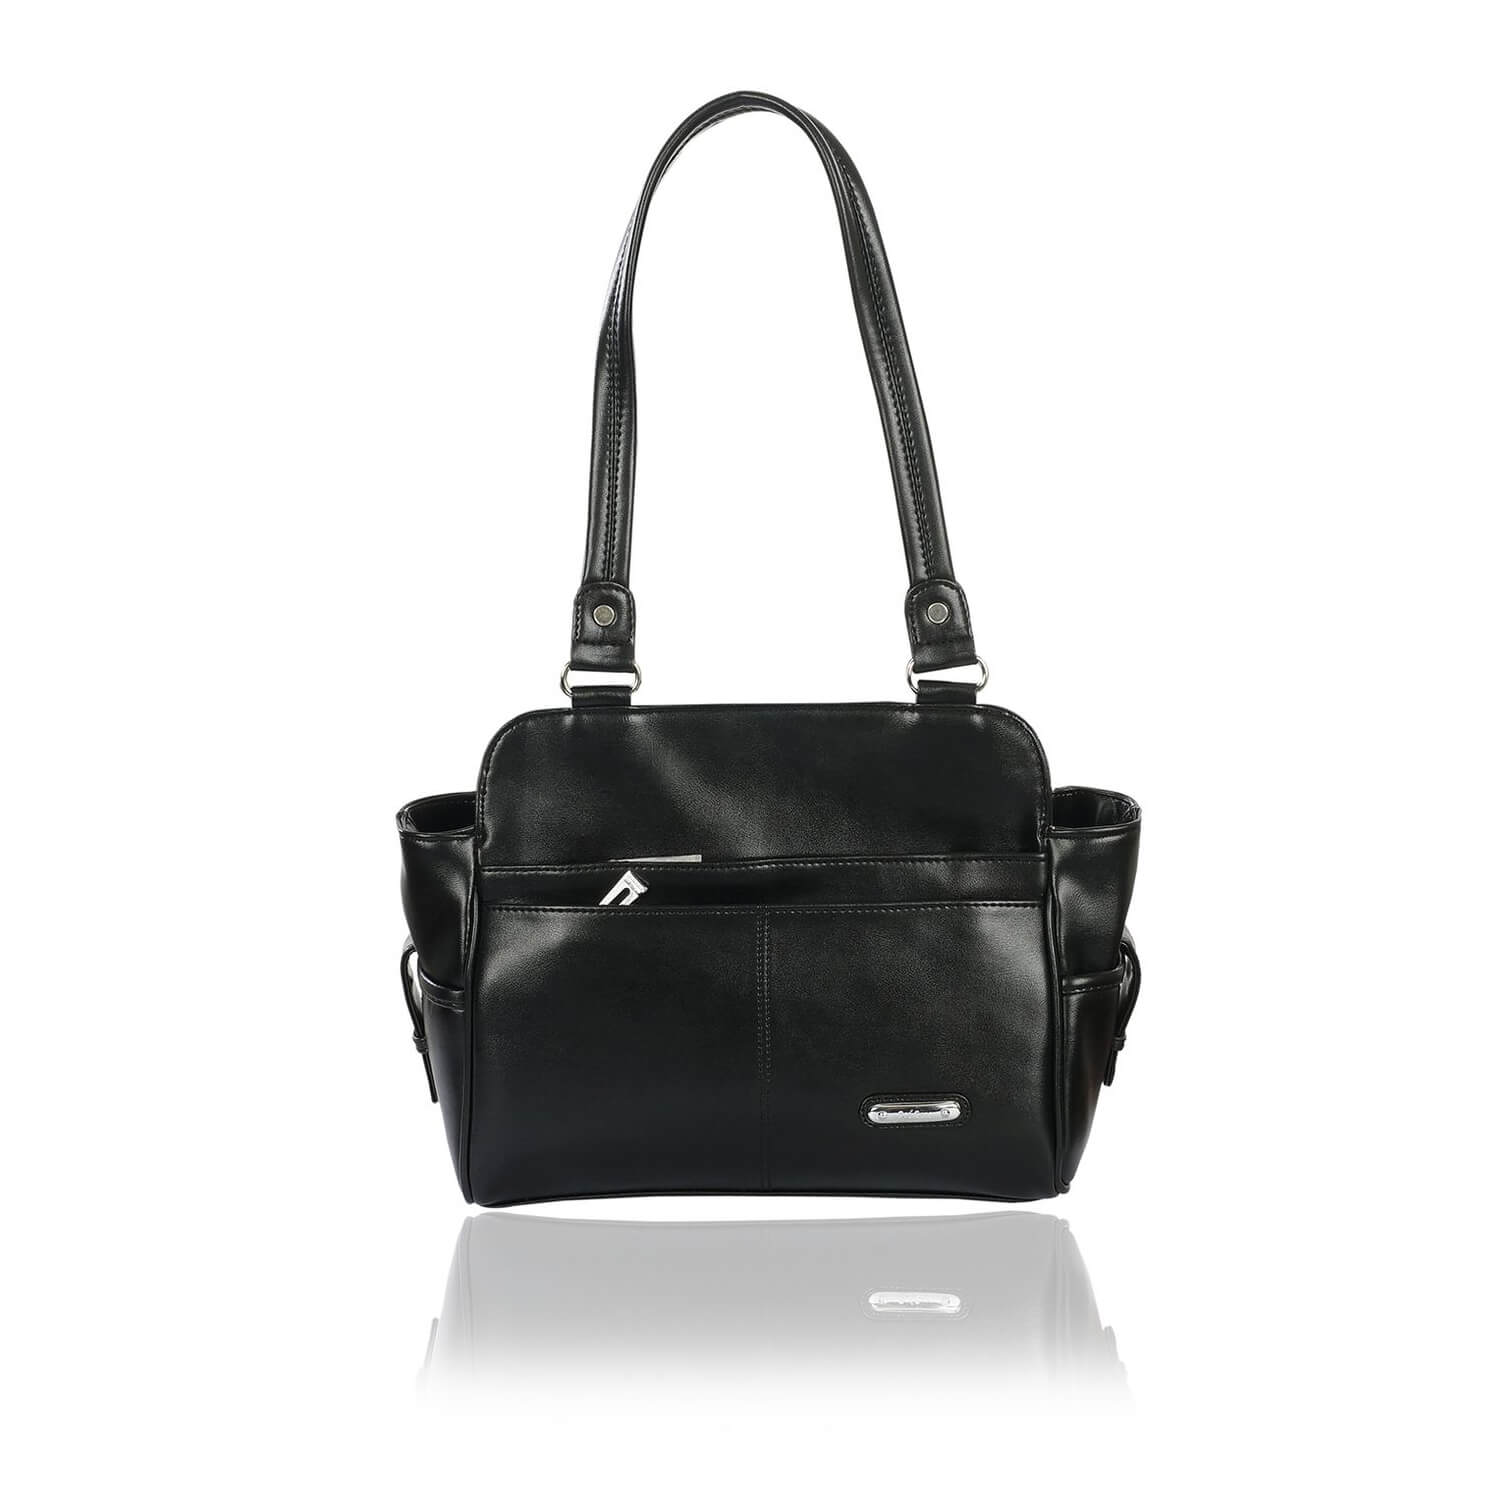 Right Choice RCH272 Black  Stylish handbags for women's